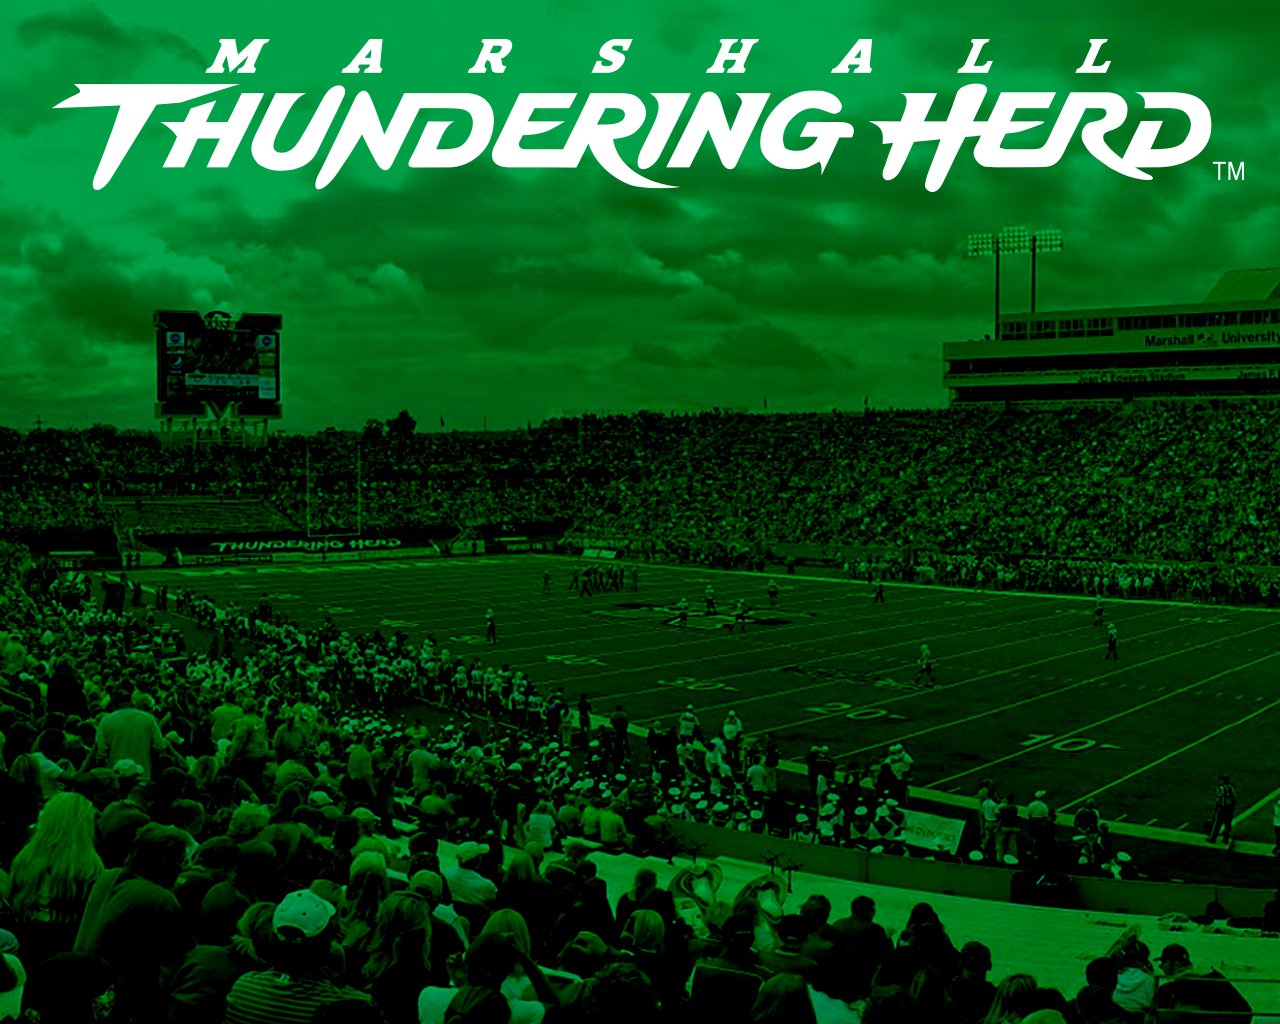 Marshall University Wallpaper